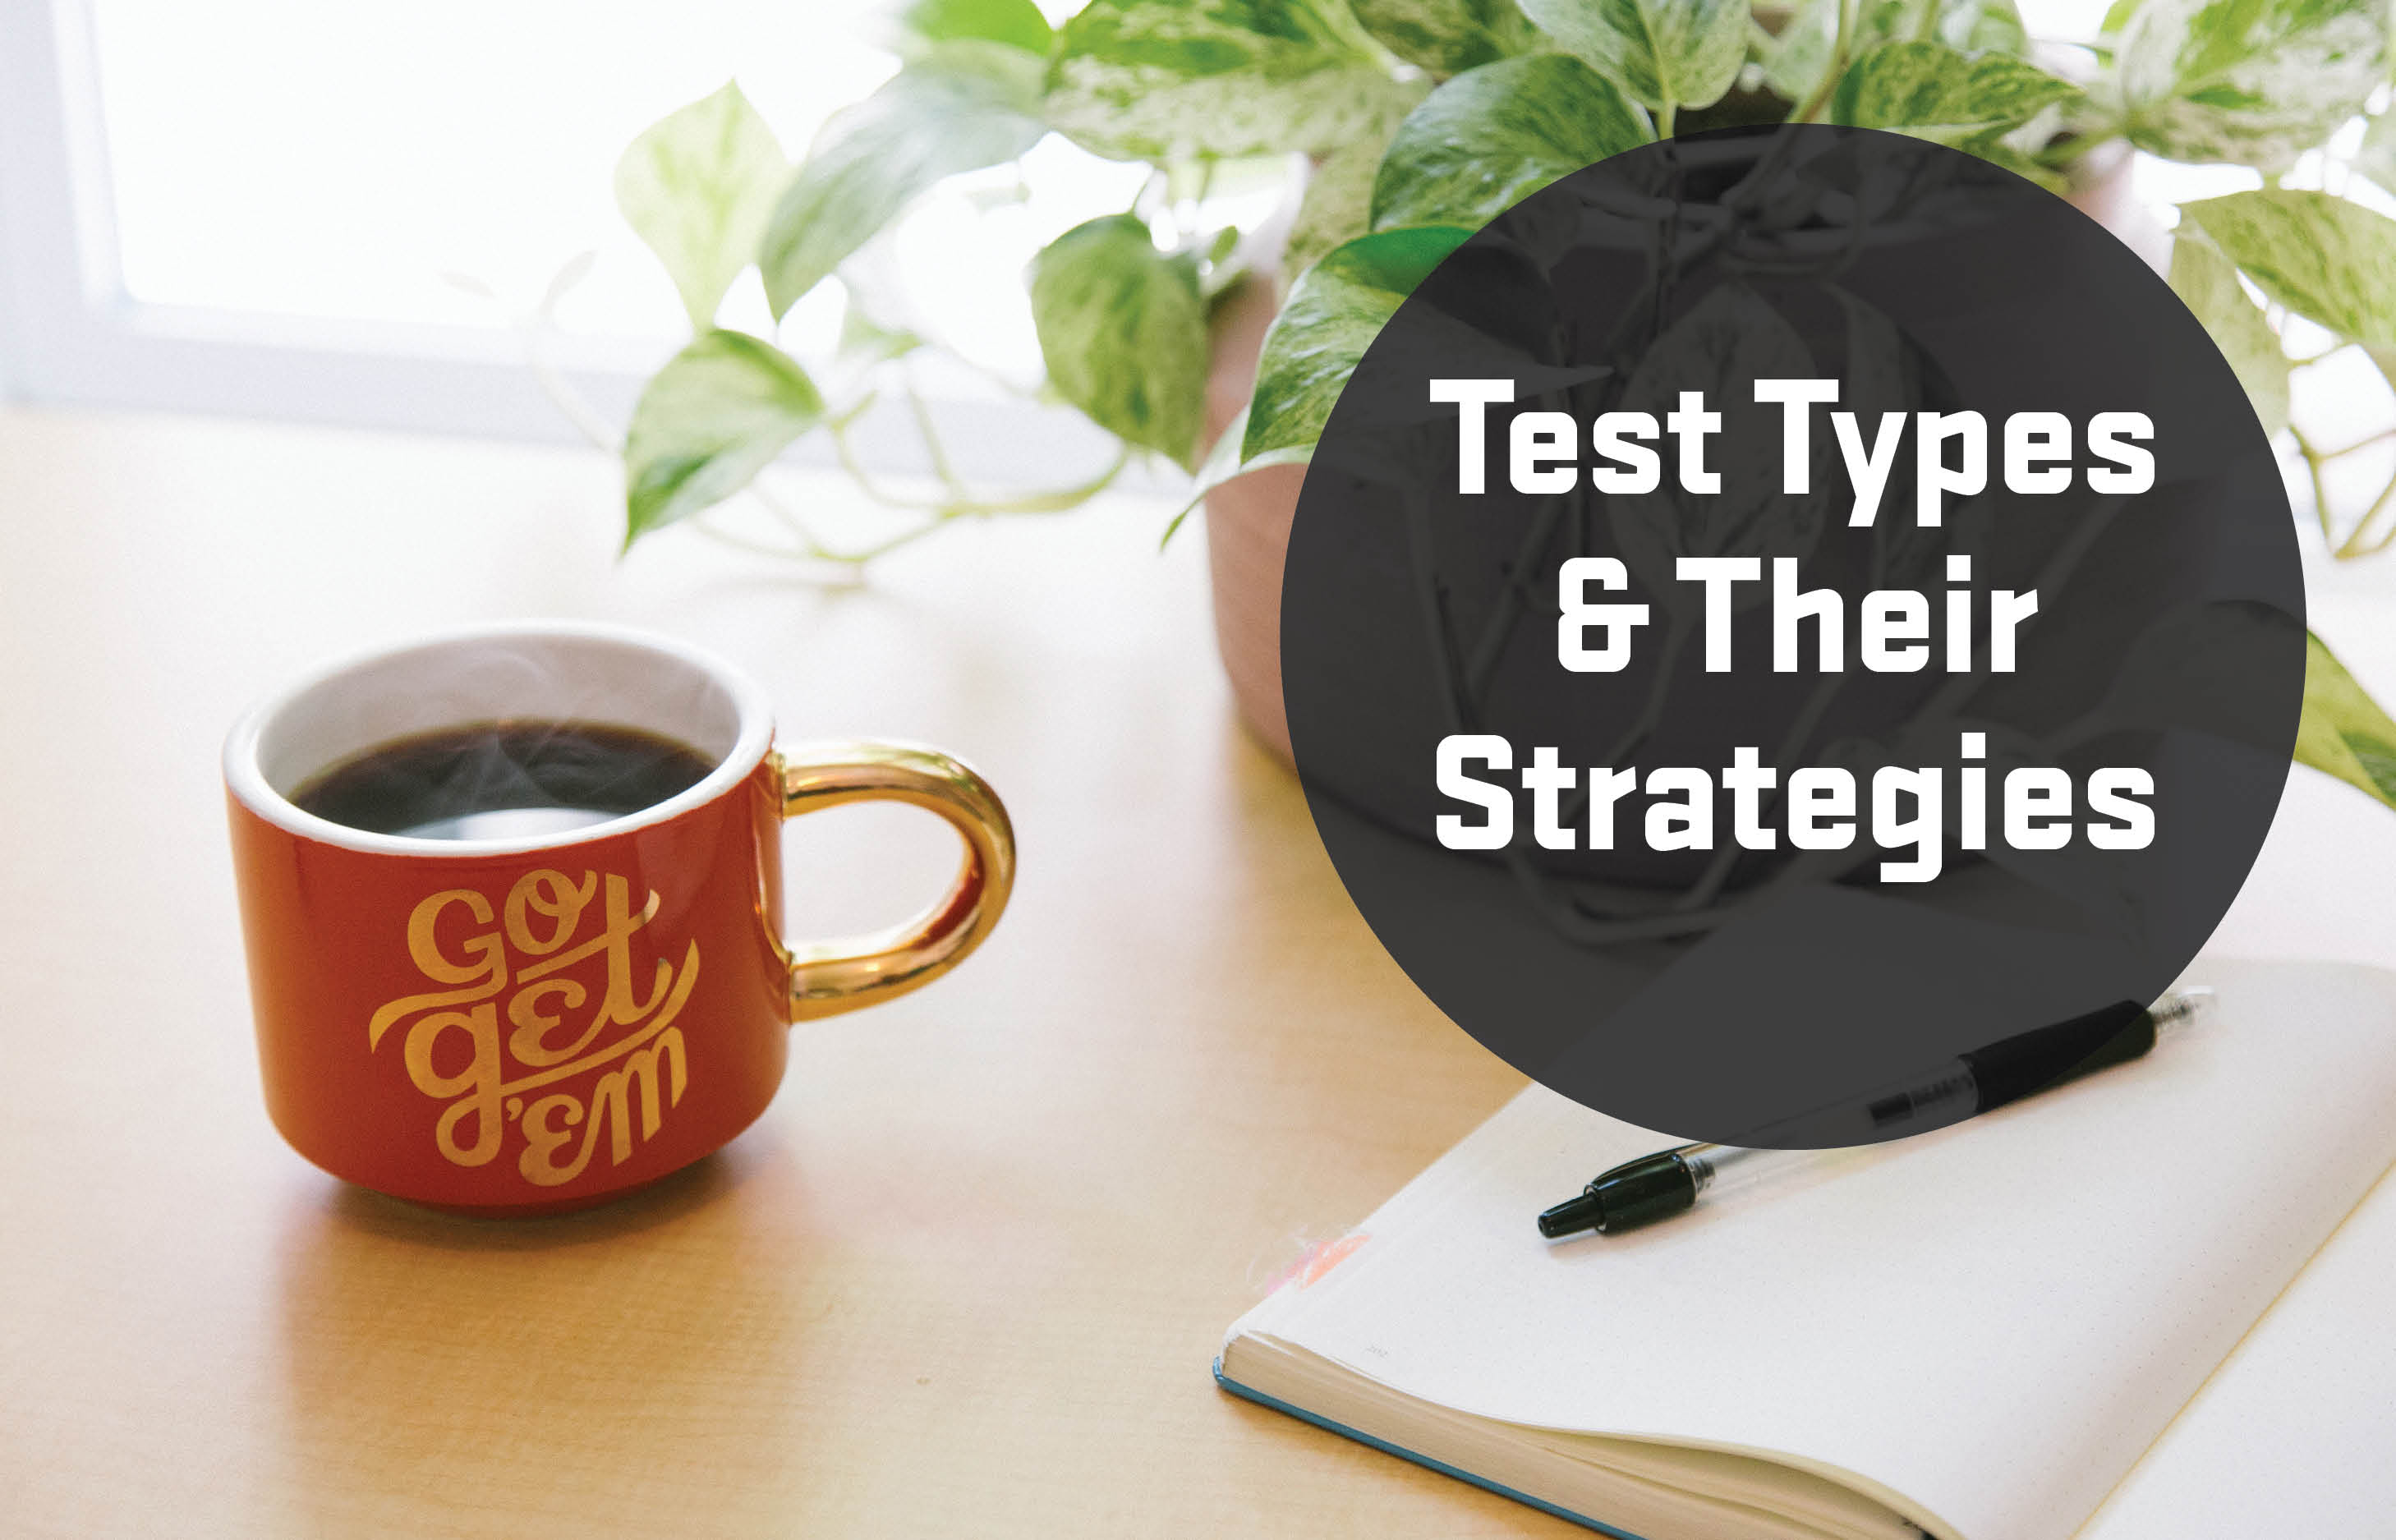 Test types and their strategies